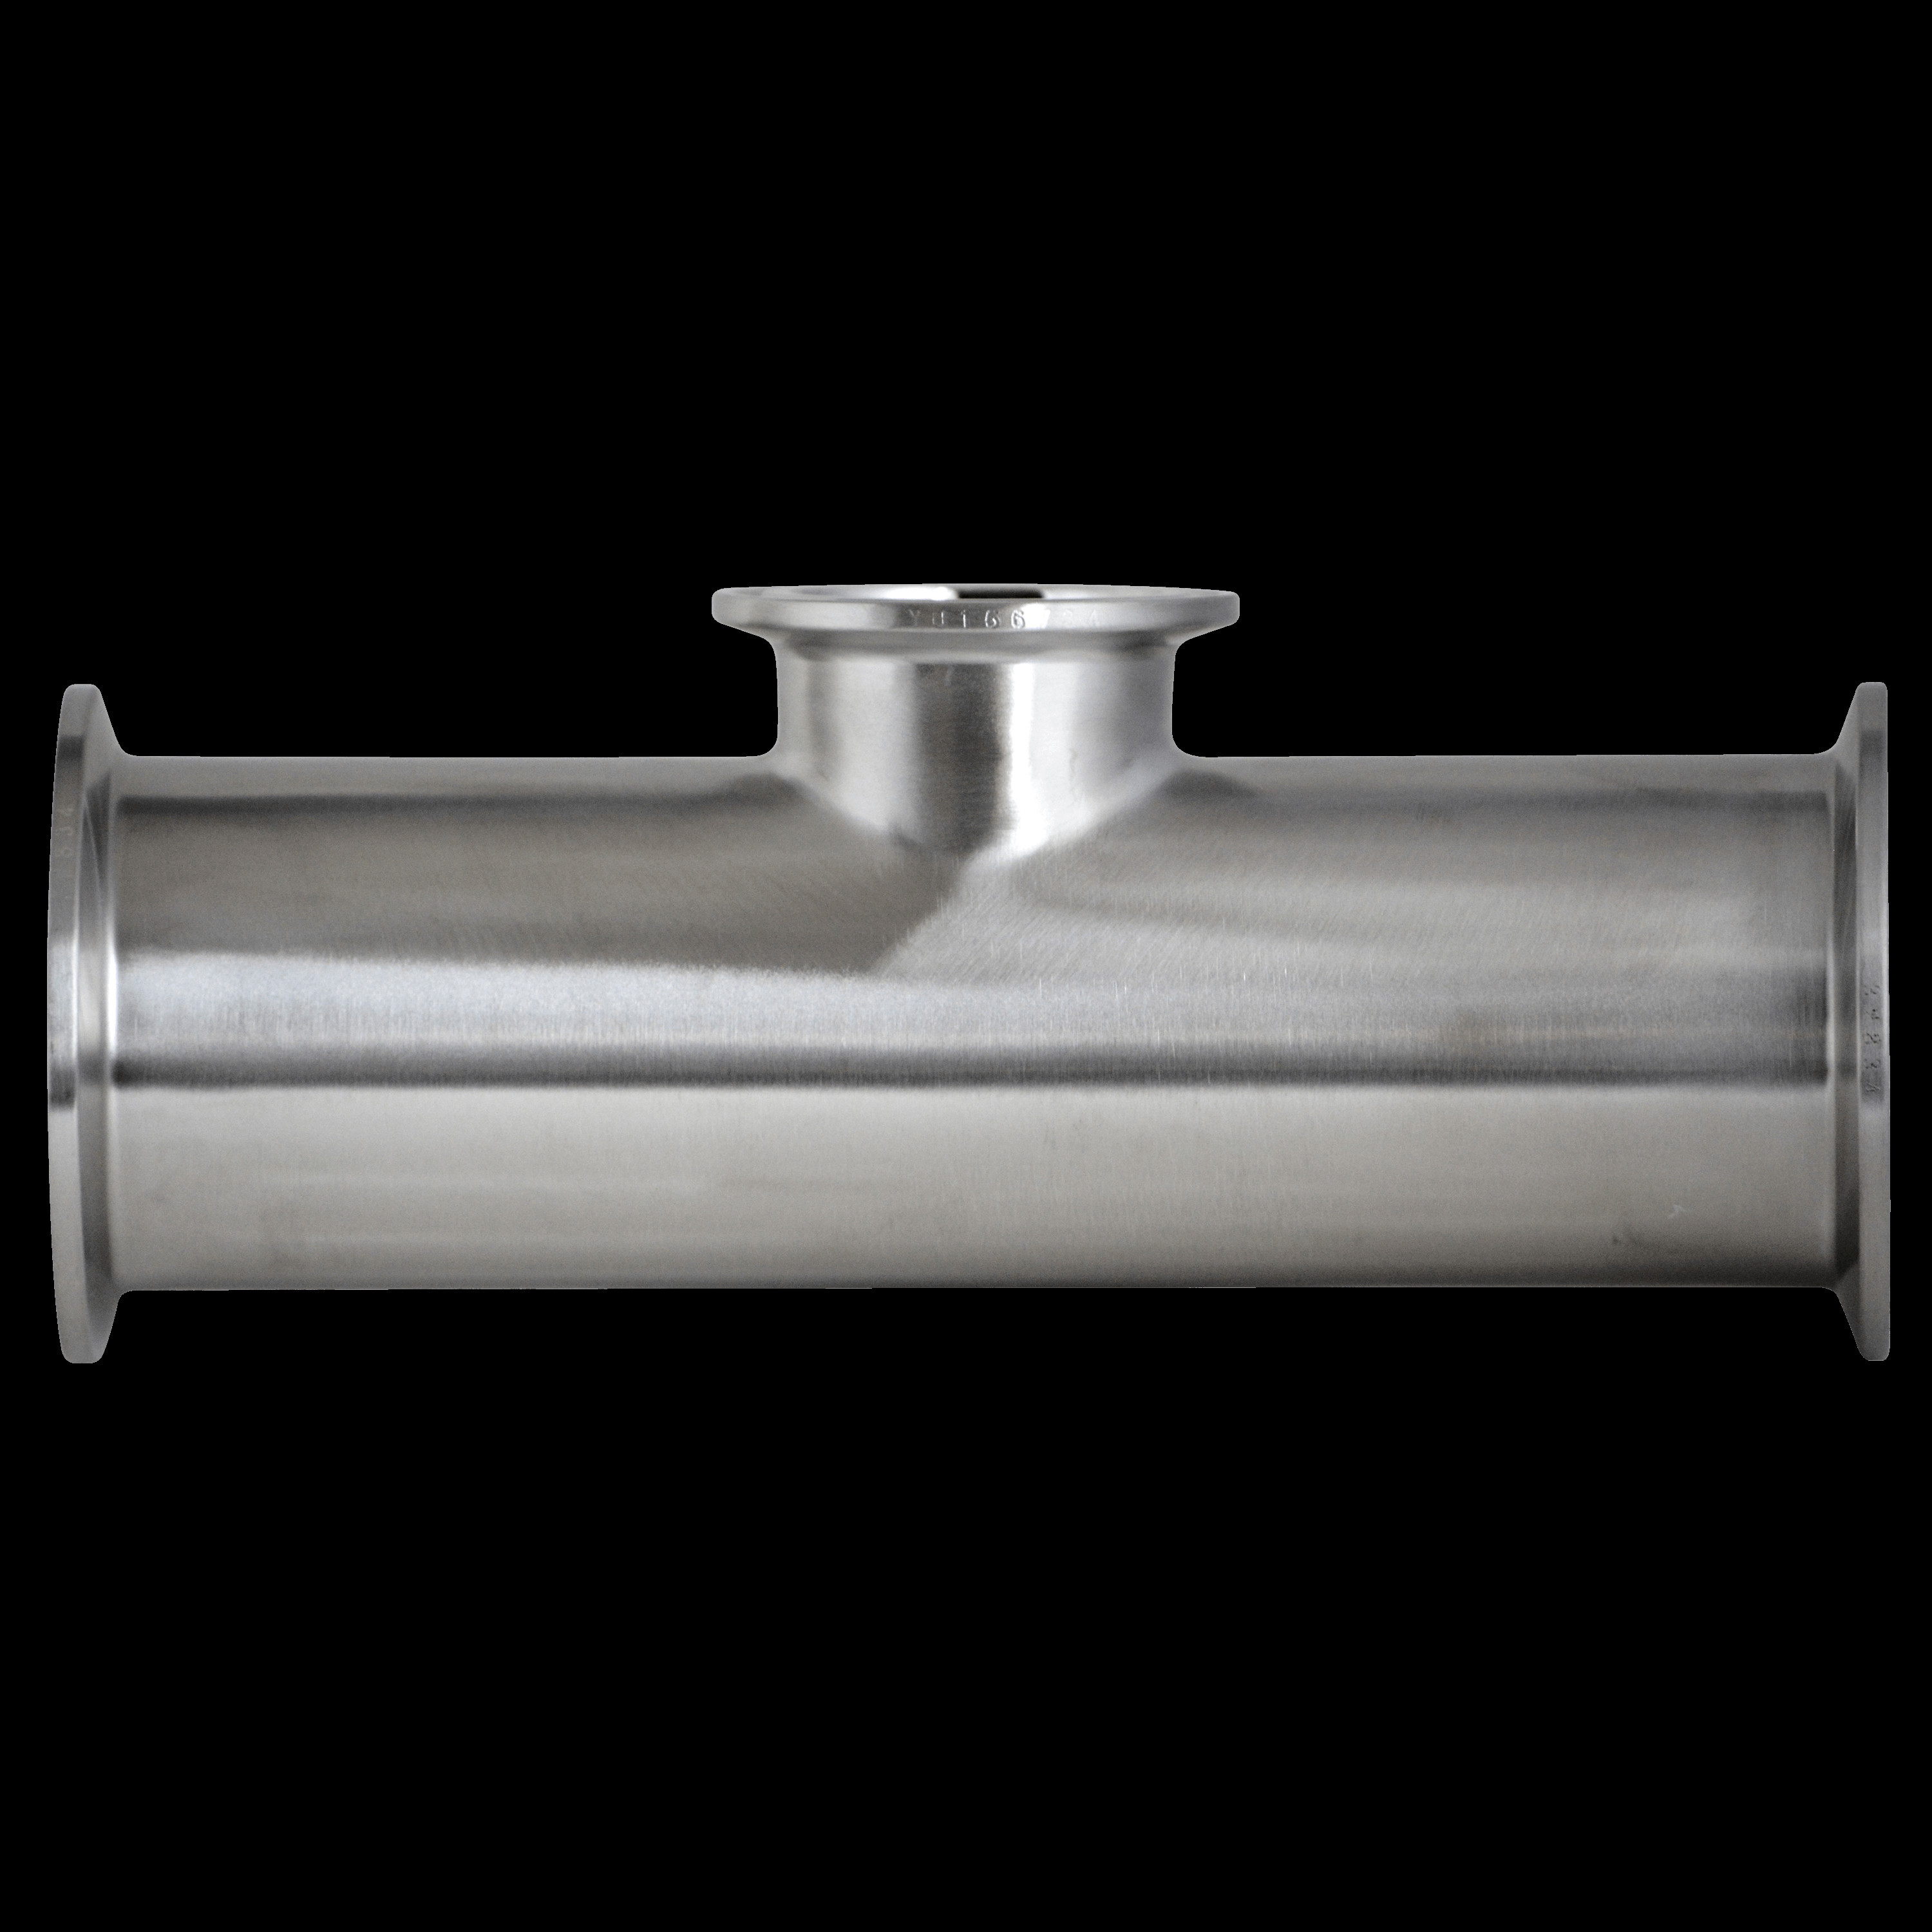 stainless steel cylinder vase of stainless steel sanitary fittings clamps page 6 top line inside 7rmps 3″ x 2 1 2″ tee reducing clamp x clamp x short outlet clamp bpe 316l 15ra id 32ra od